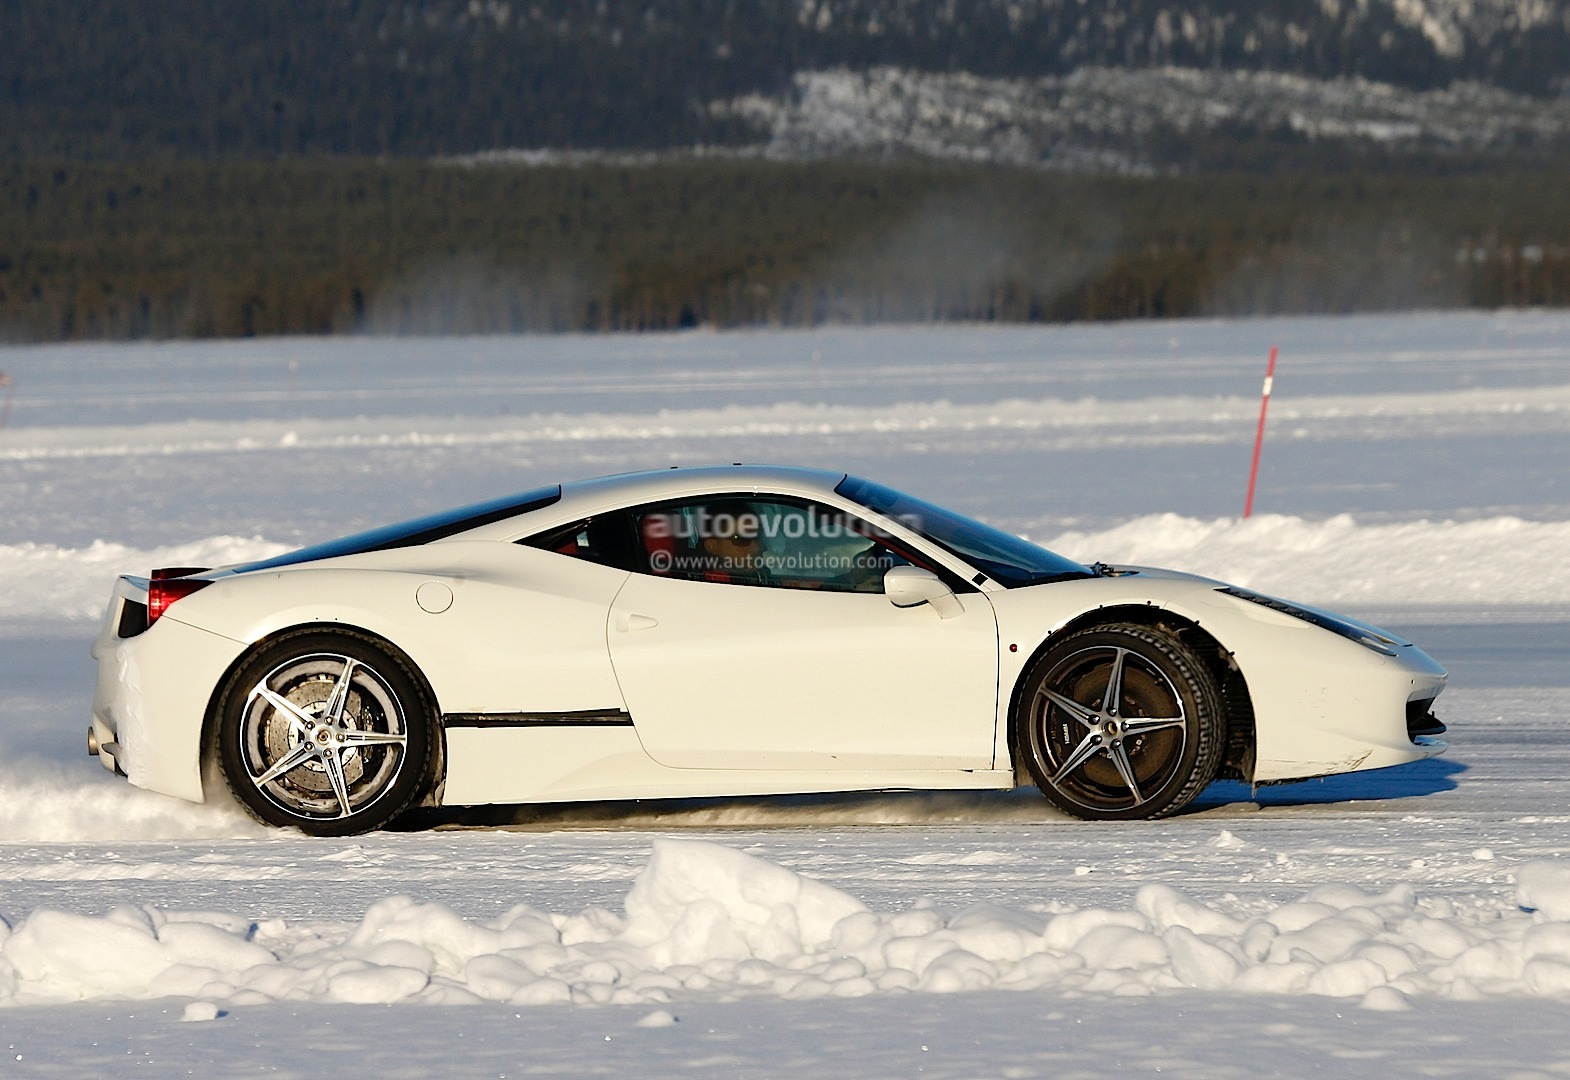 ferrari 458 replacement spied drifting on ice autoevolution - 2016 Ferrari 458 Replacement